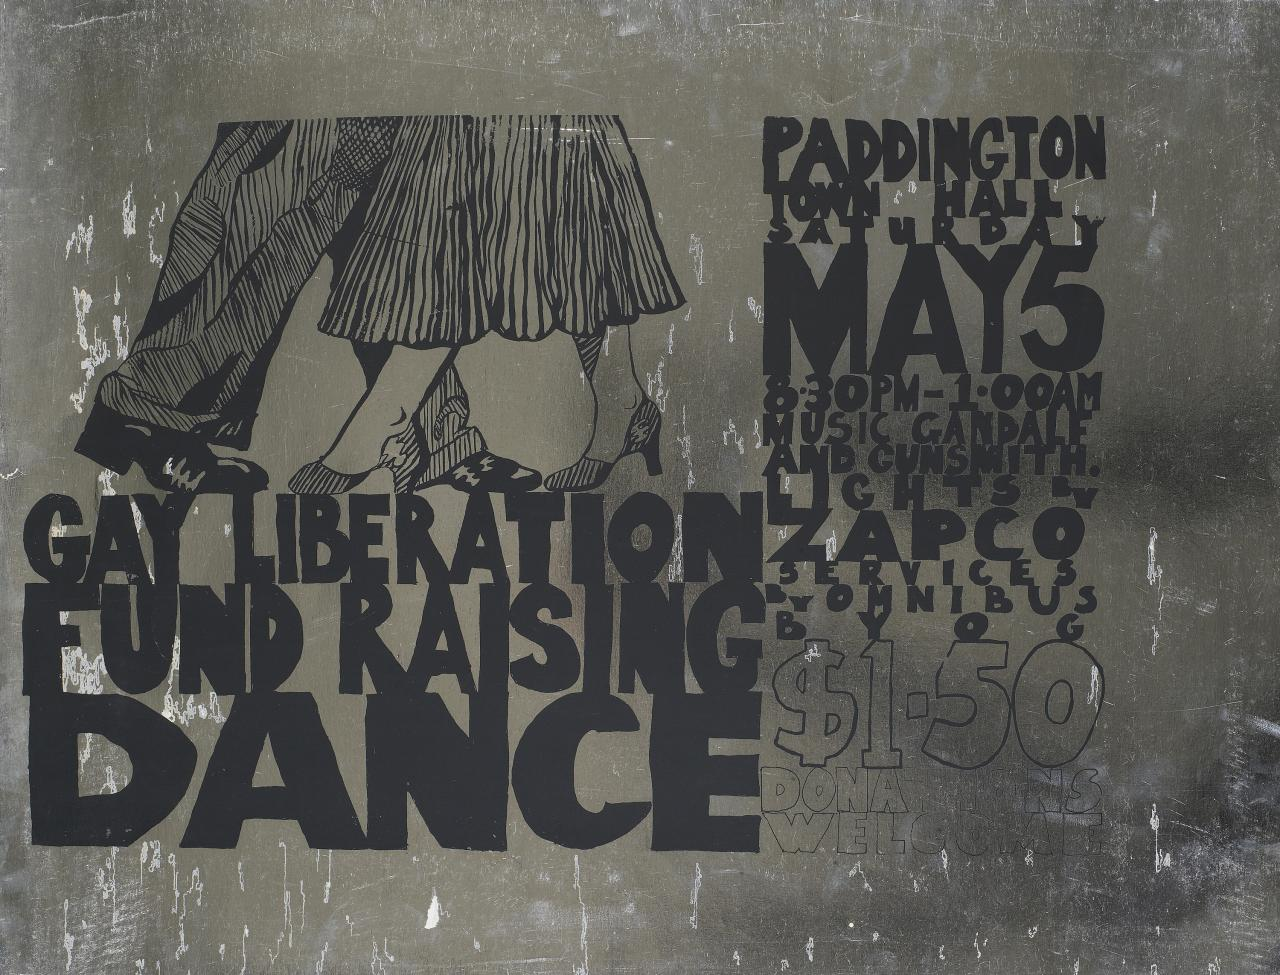 Gay liberation fundraising dance